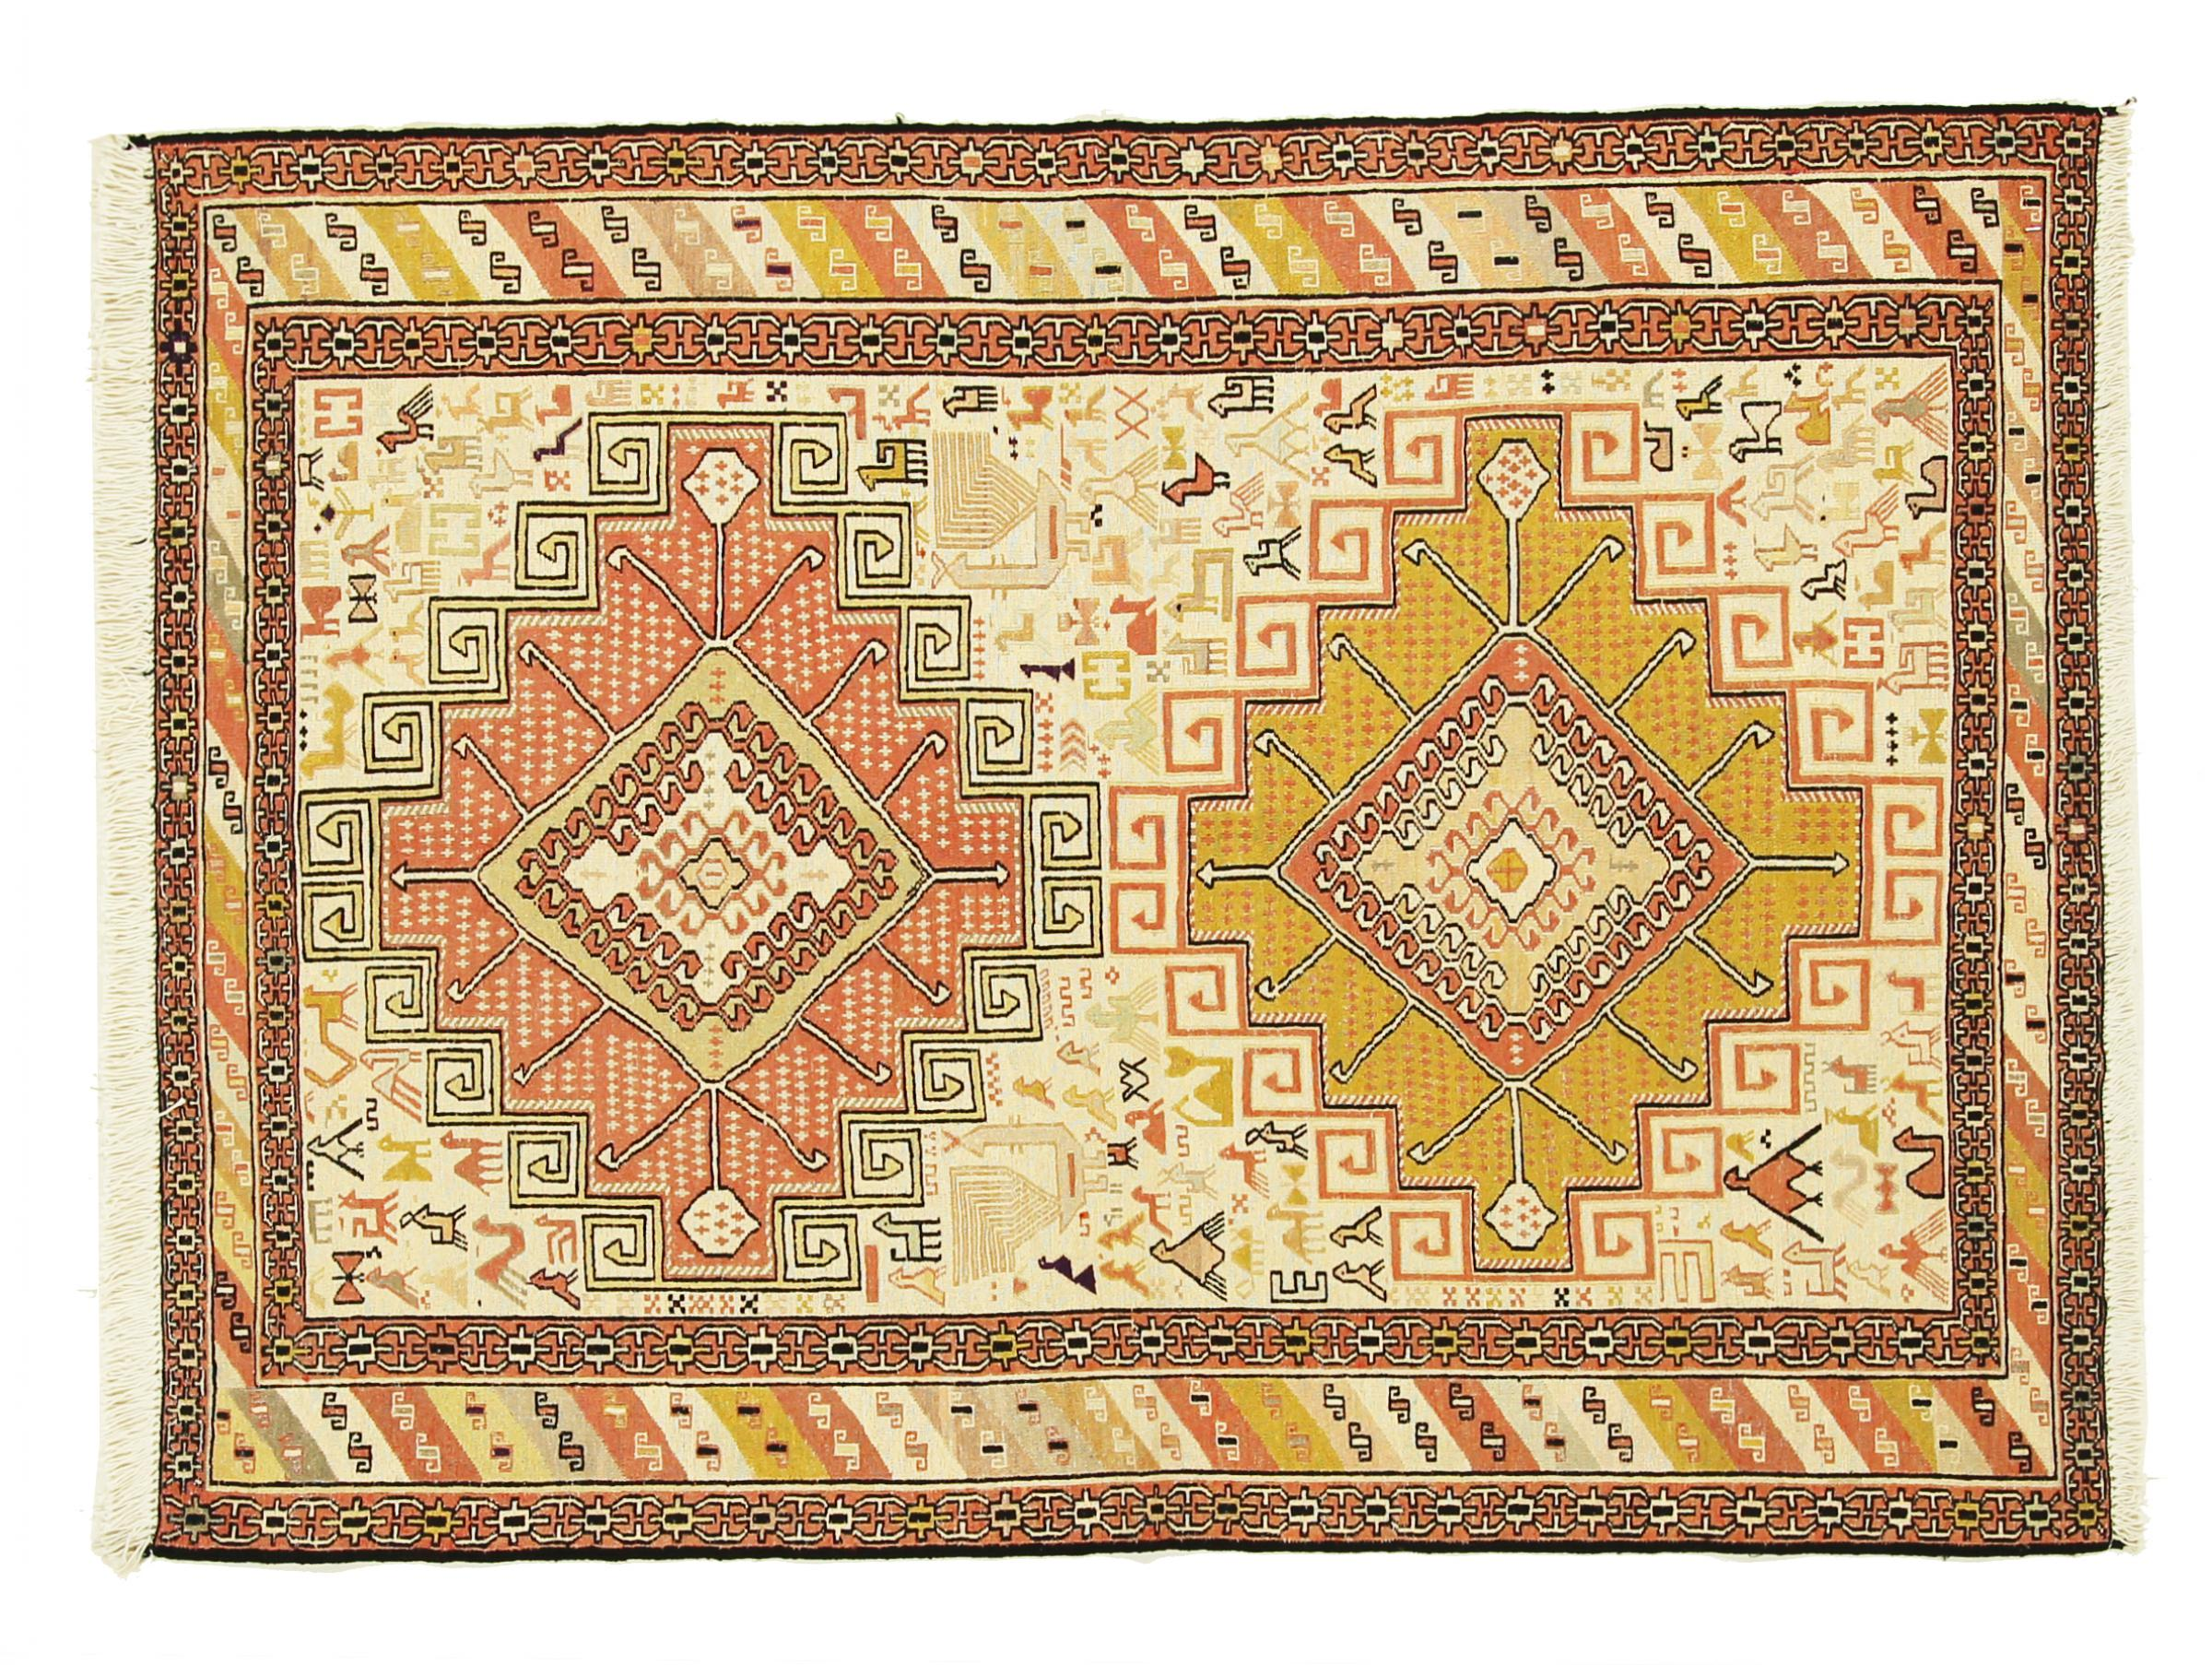 afghan carpet Find great deals on ebay for afghan carpet and persian carpet shop with confidence.